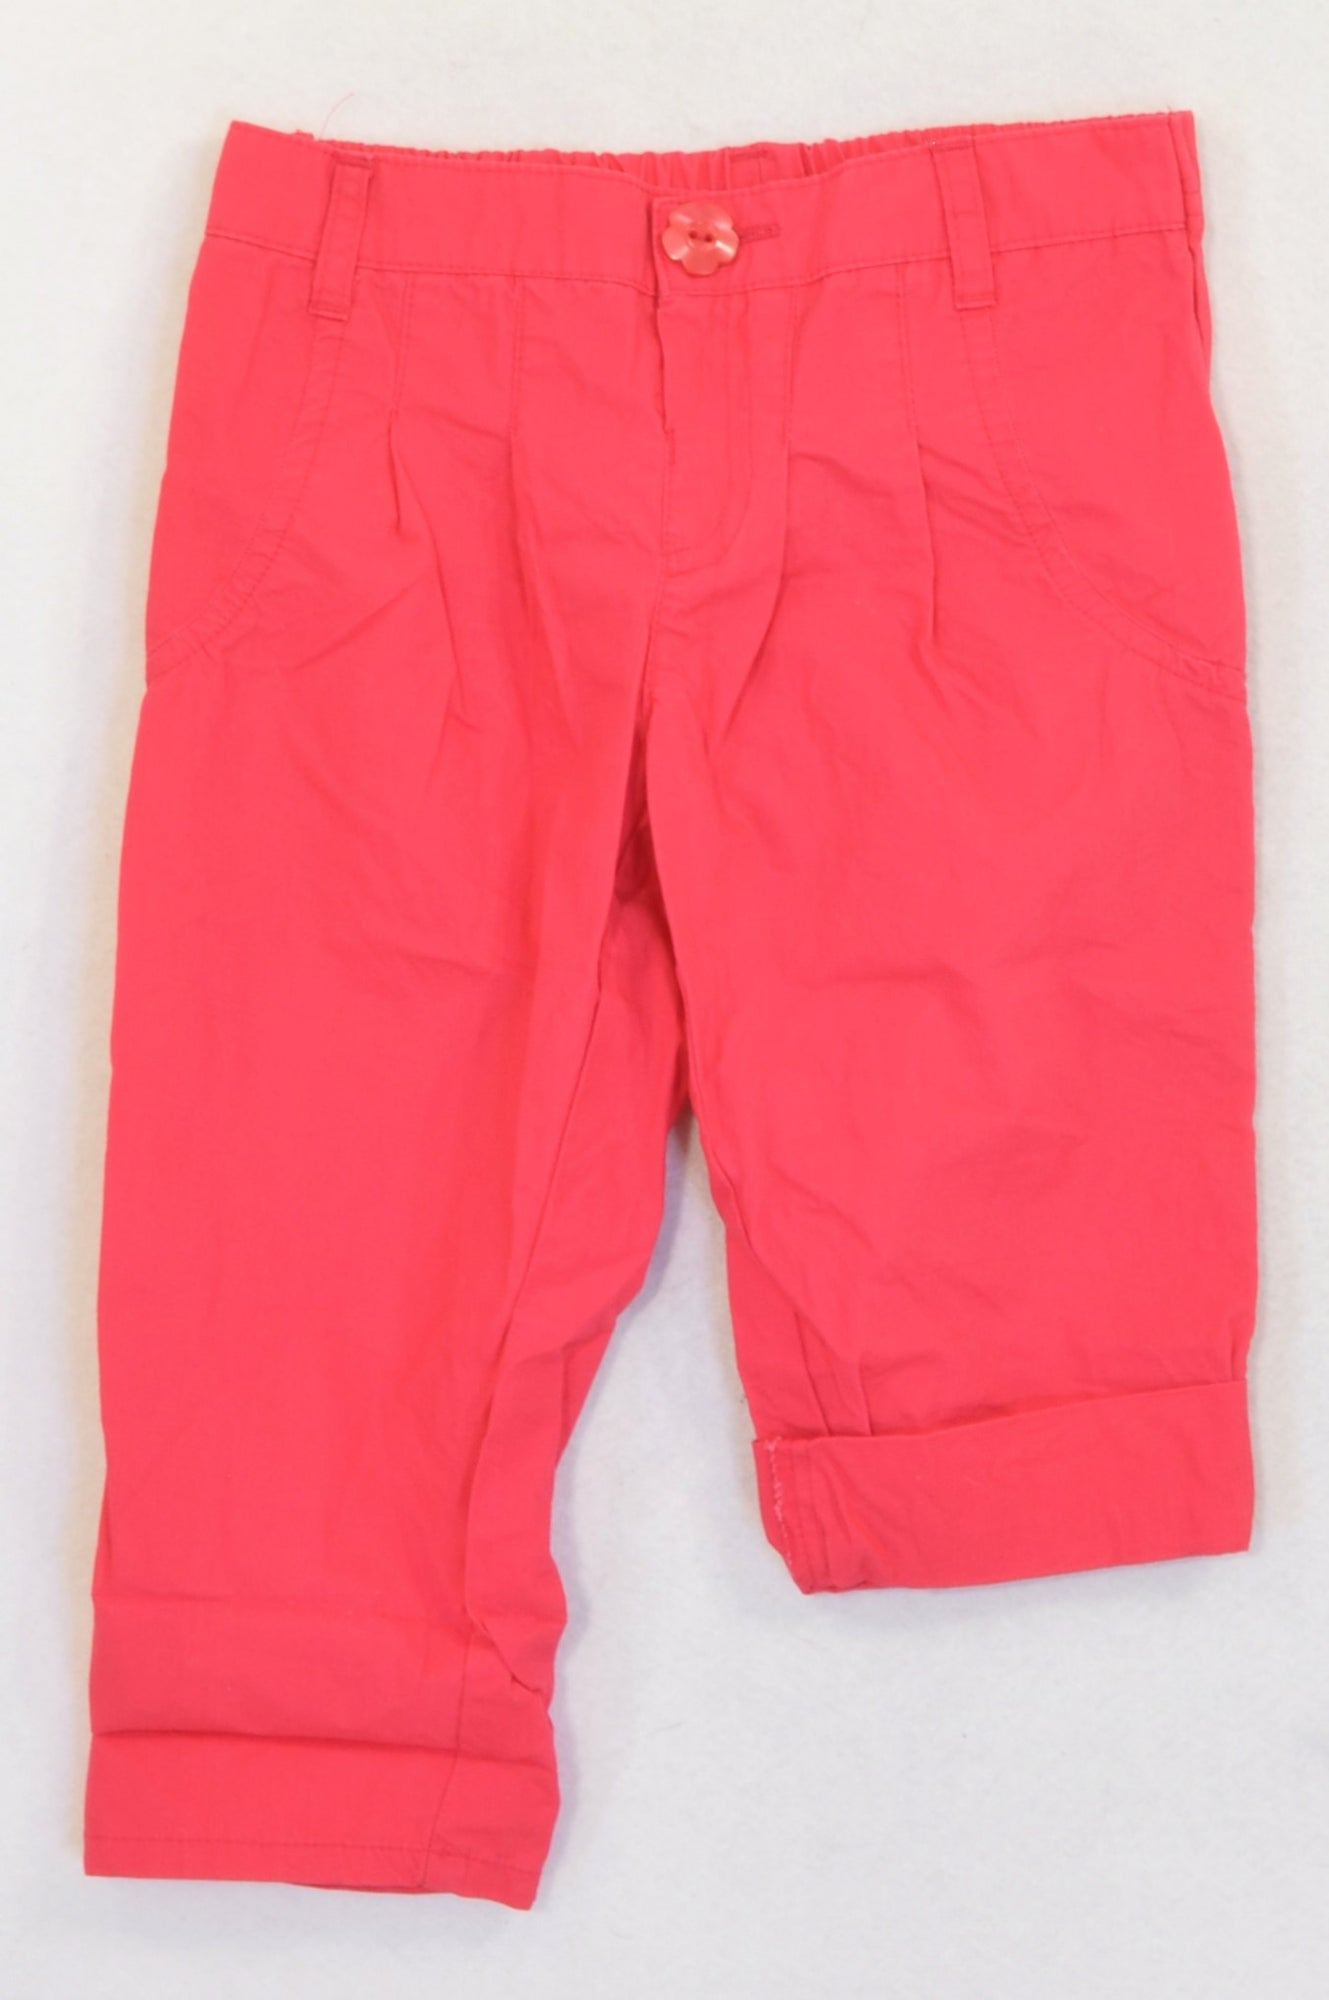 Woolworths Lightweight Cerise Pleat Front Pants Girls 18-24 months